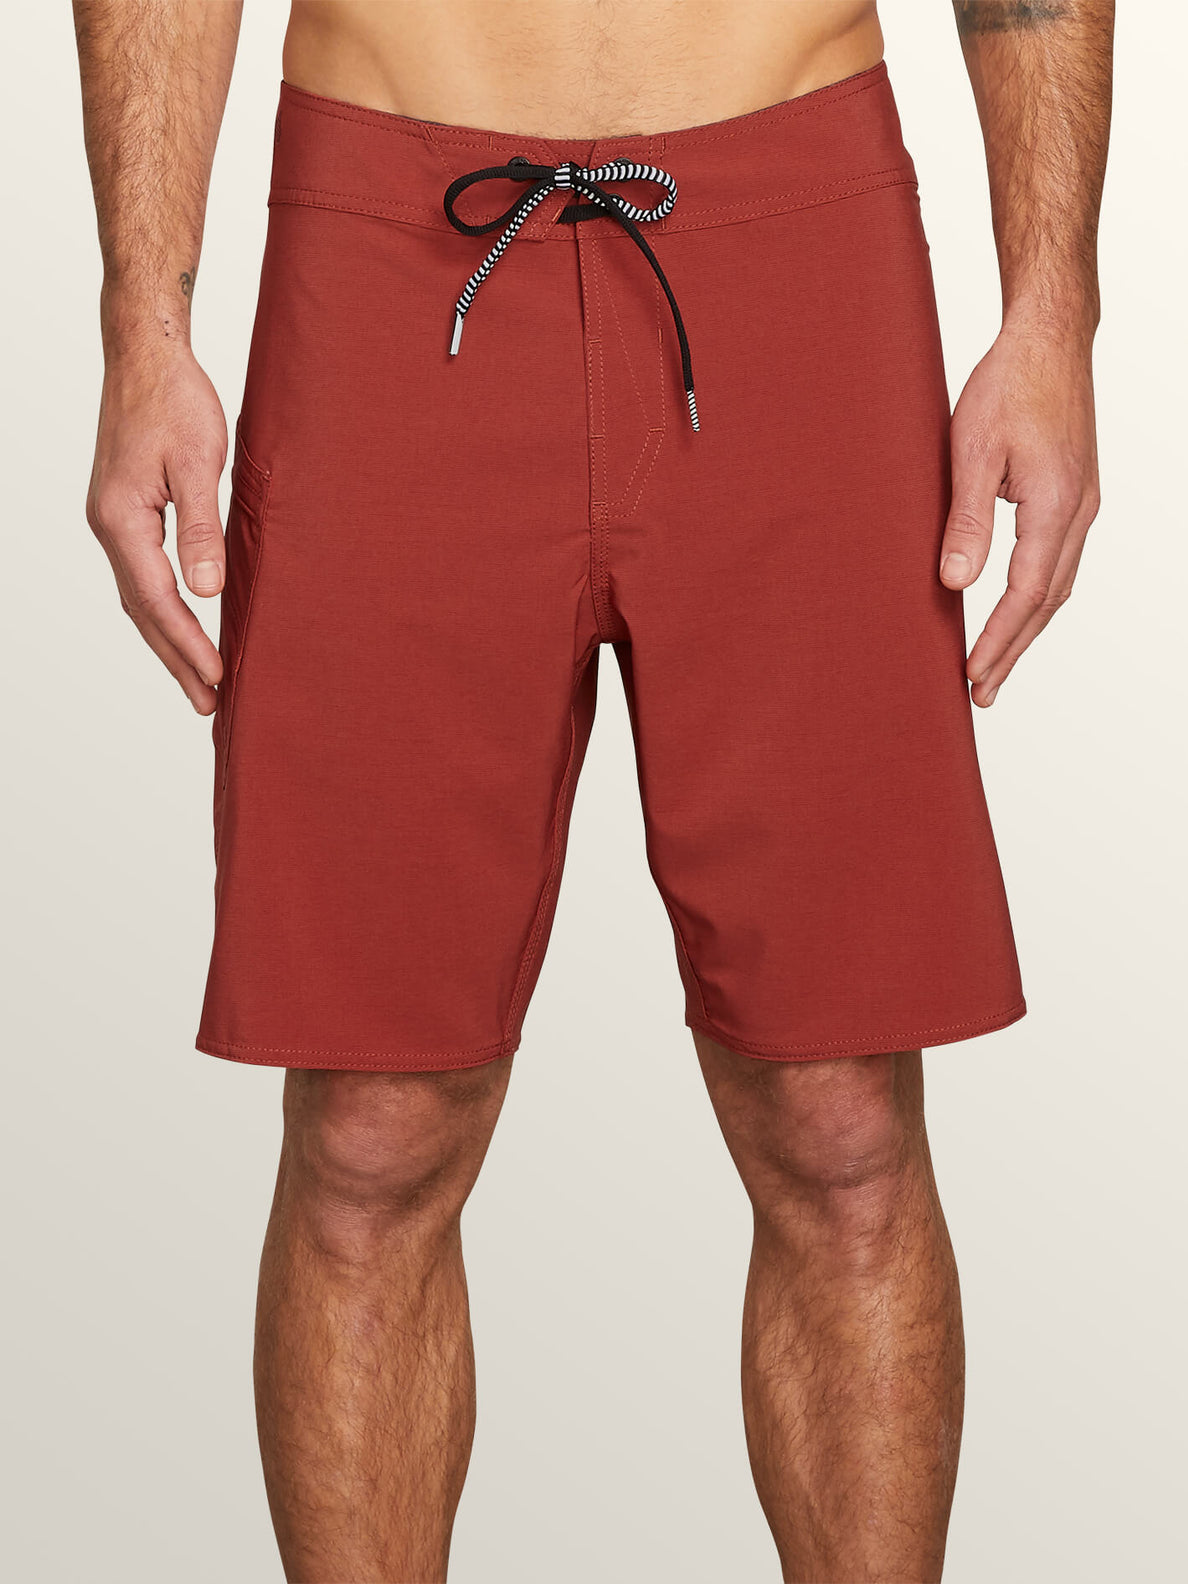 Lido Solid Mod Boardshorts In Rust, Front View